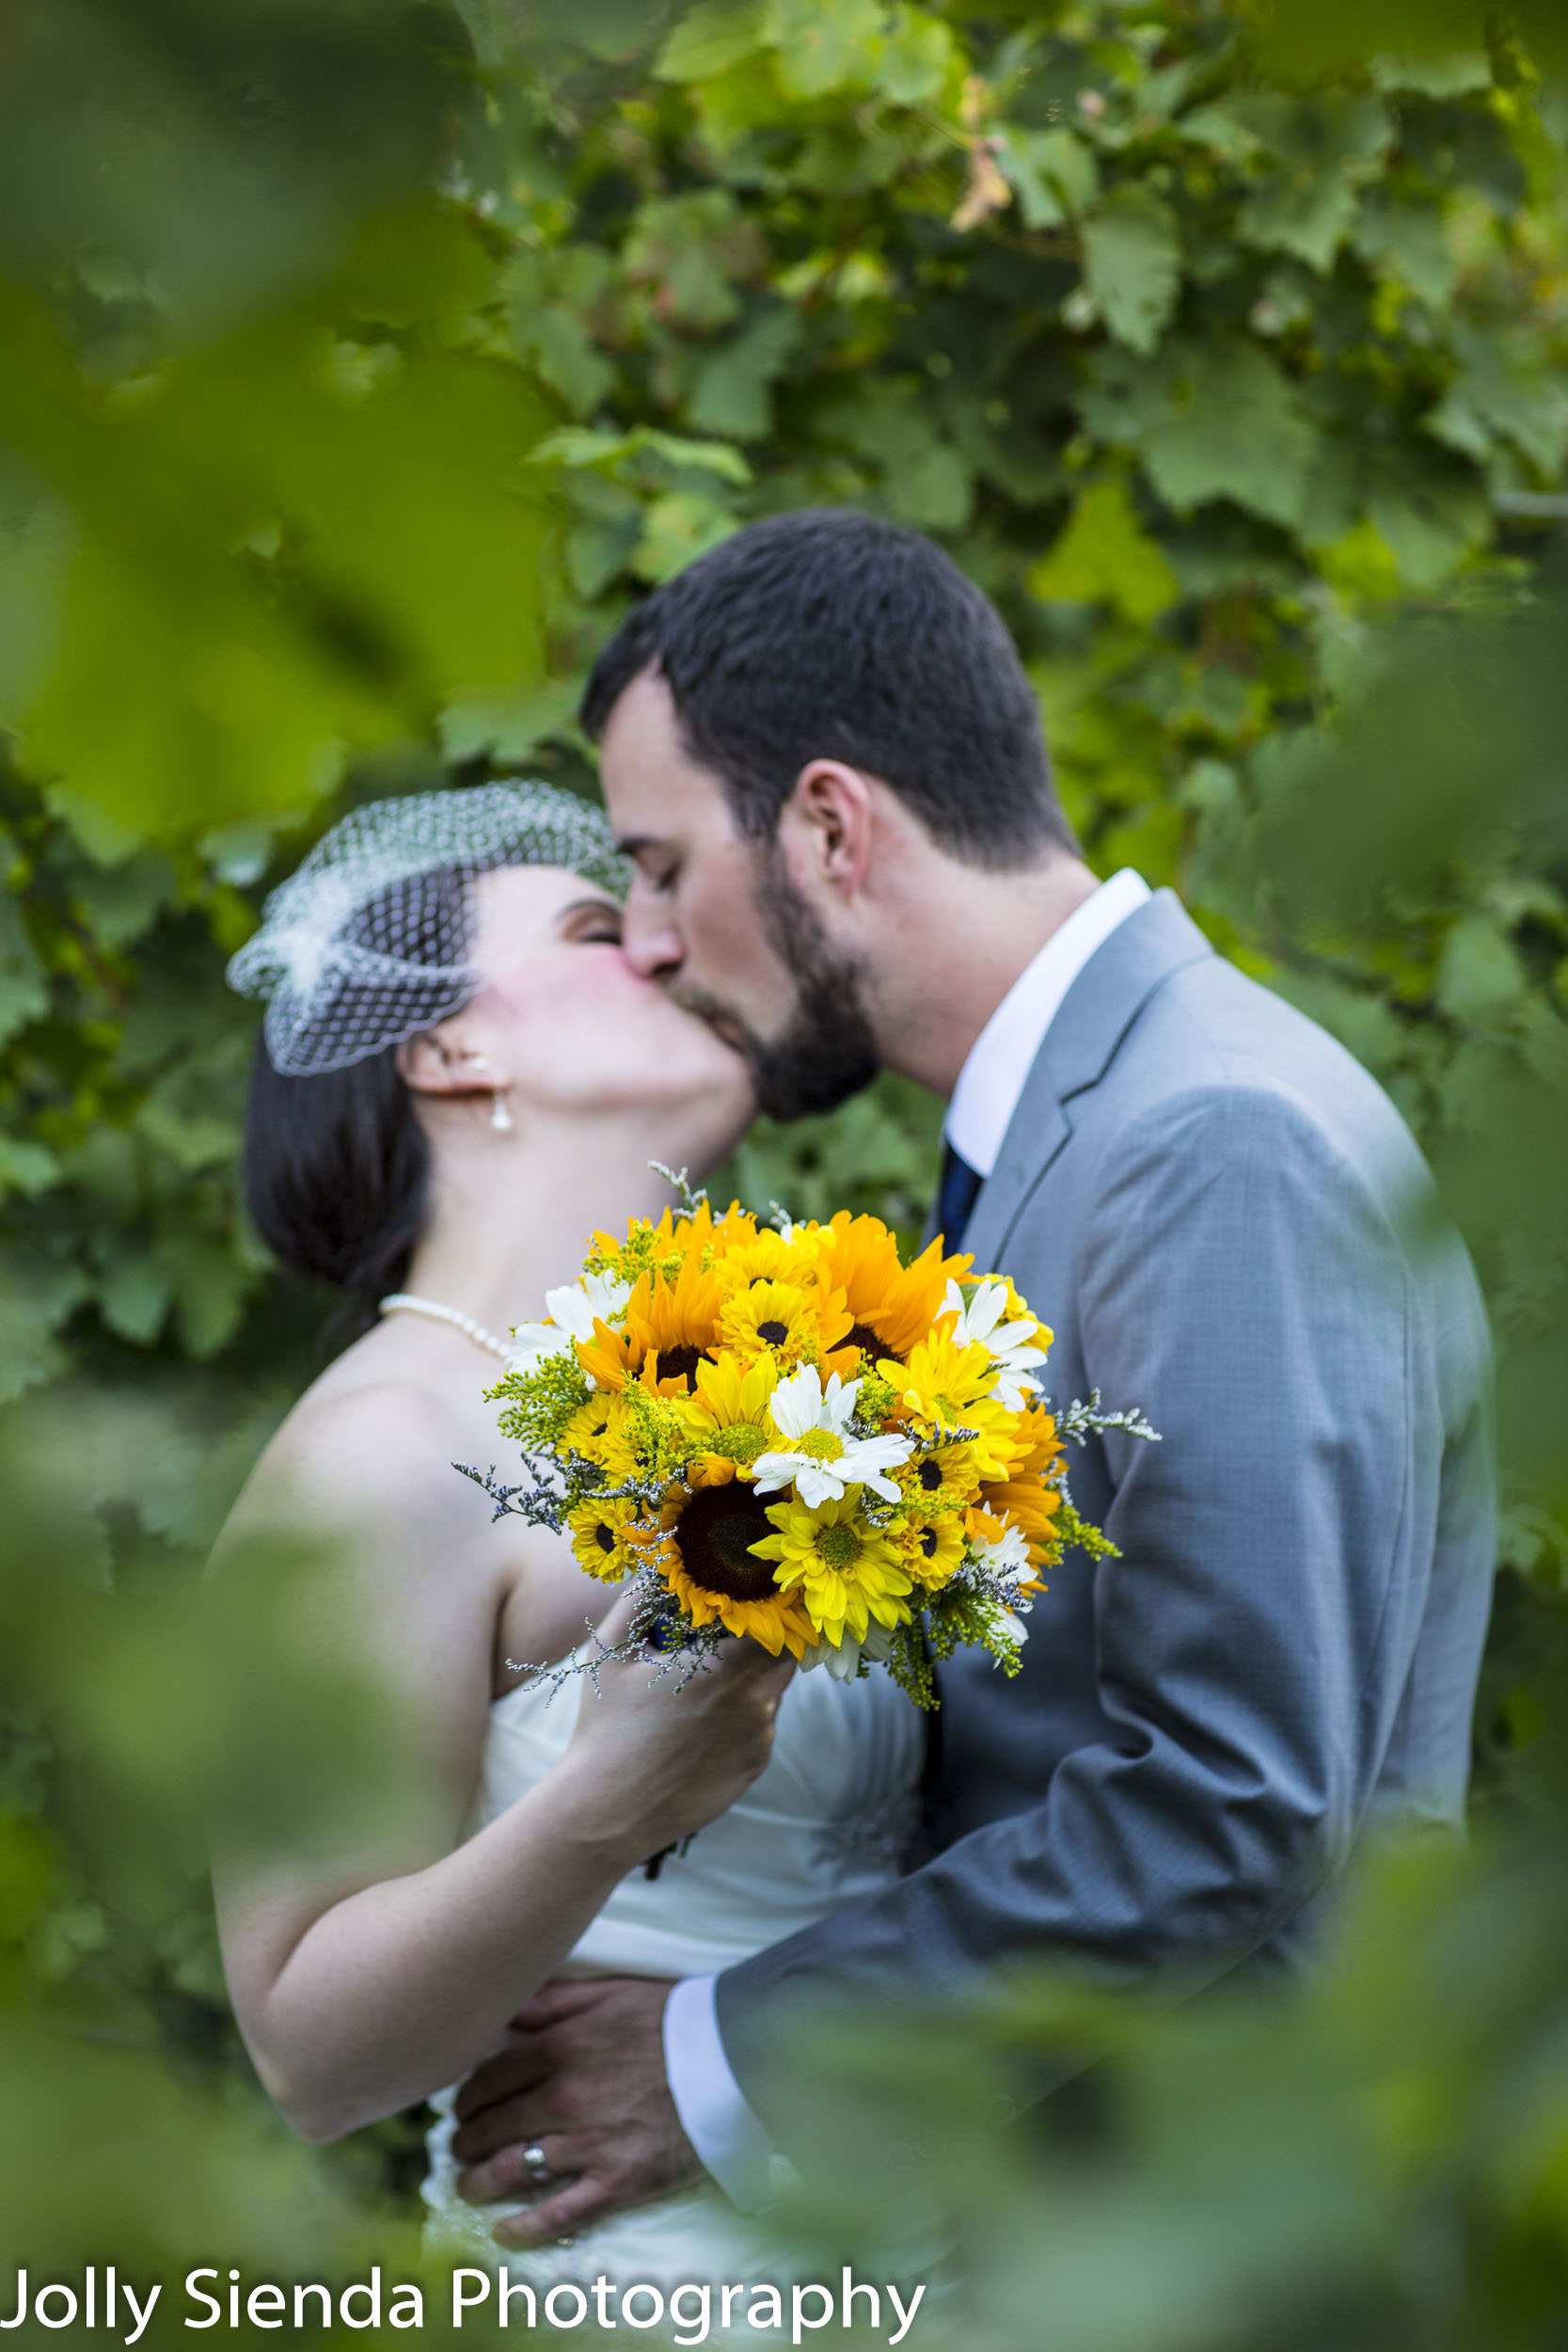 Vineyard wedding, bride and groom kiss in the sunflower vineyard